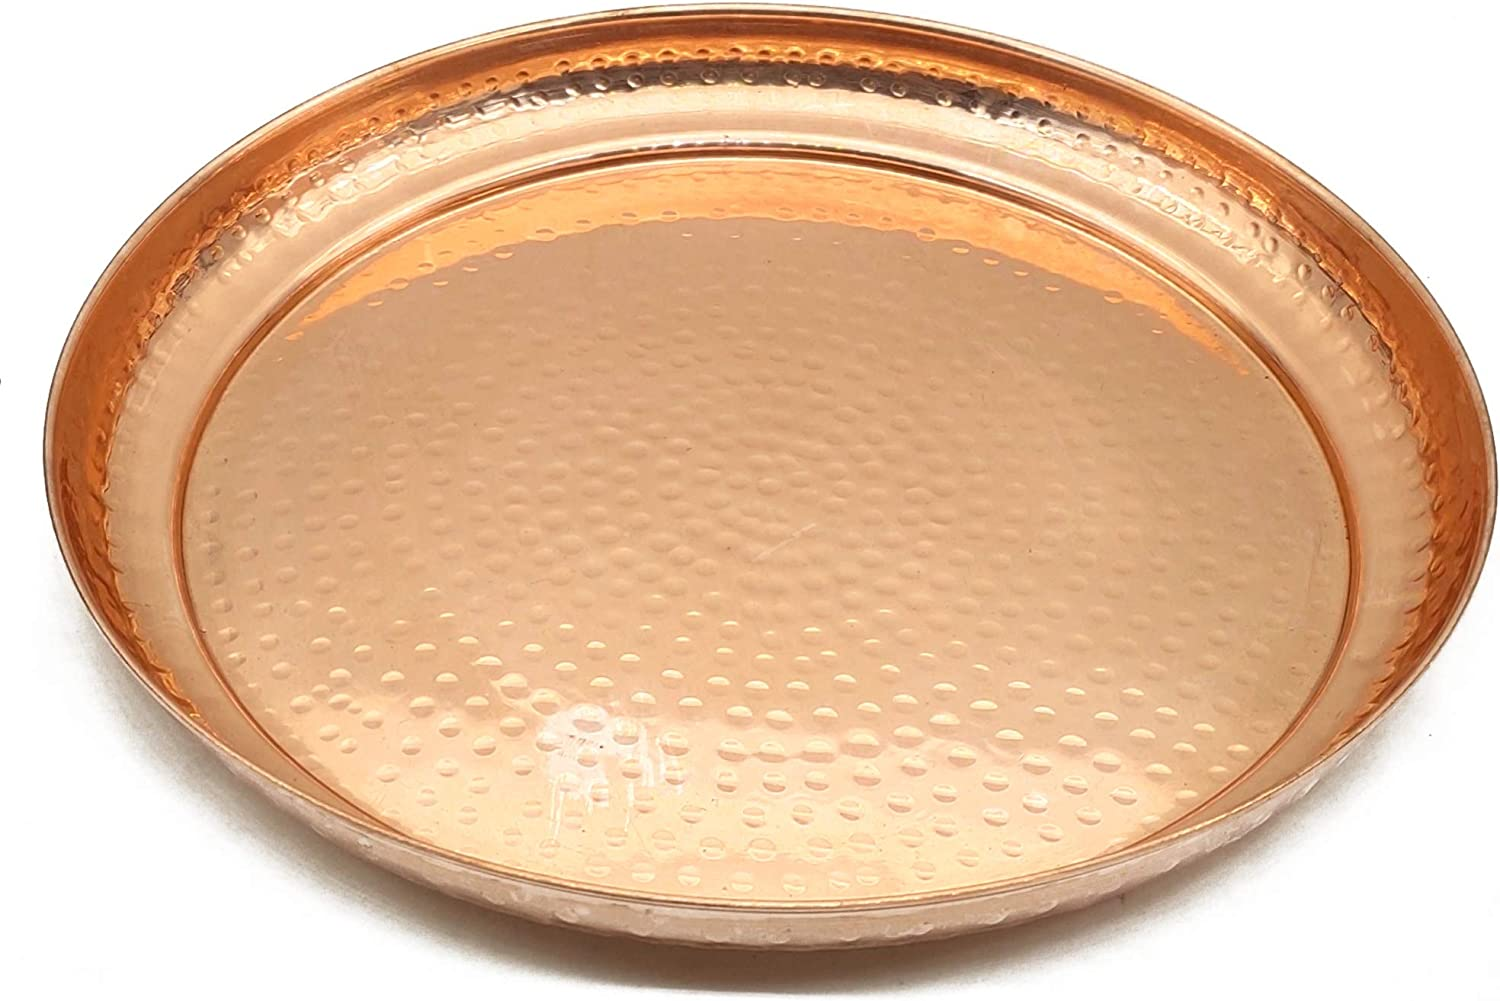 Large Contemporary Hammered Edge Pure Copper Circular Serving Party Tray- 13 Inch Round Charger Platter Serving Dish